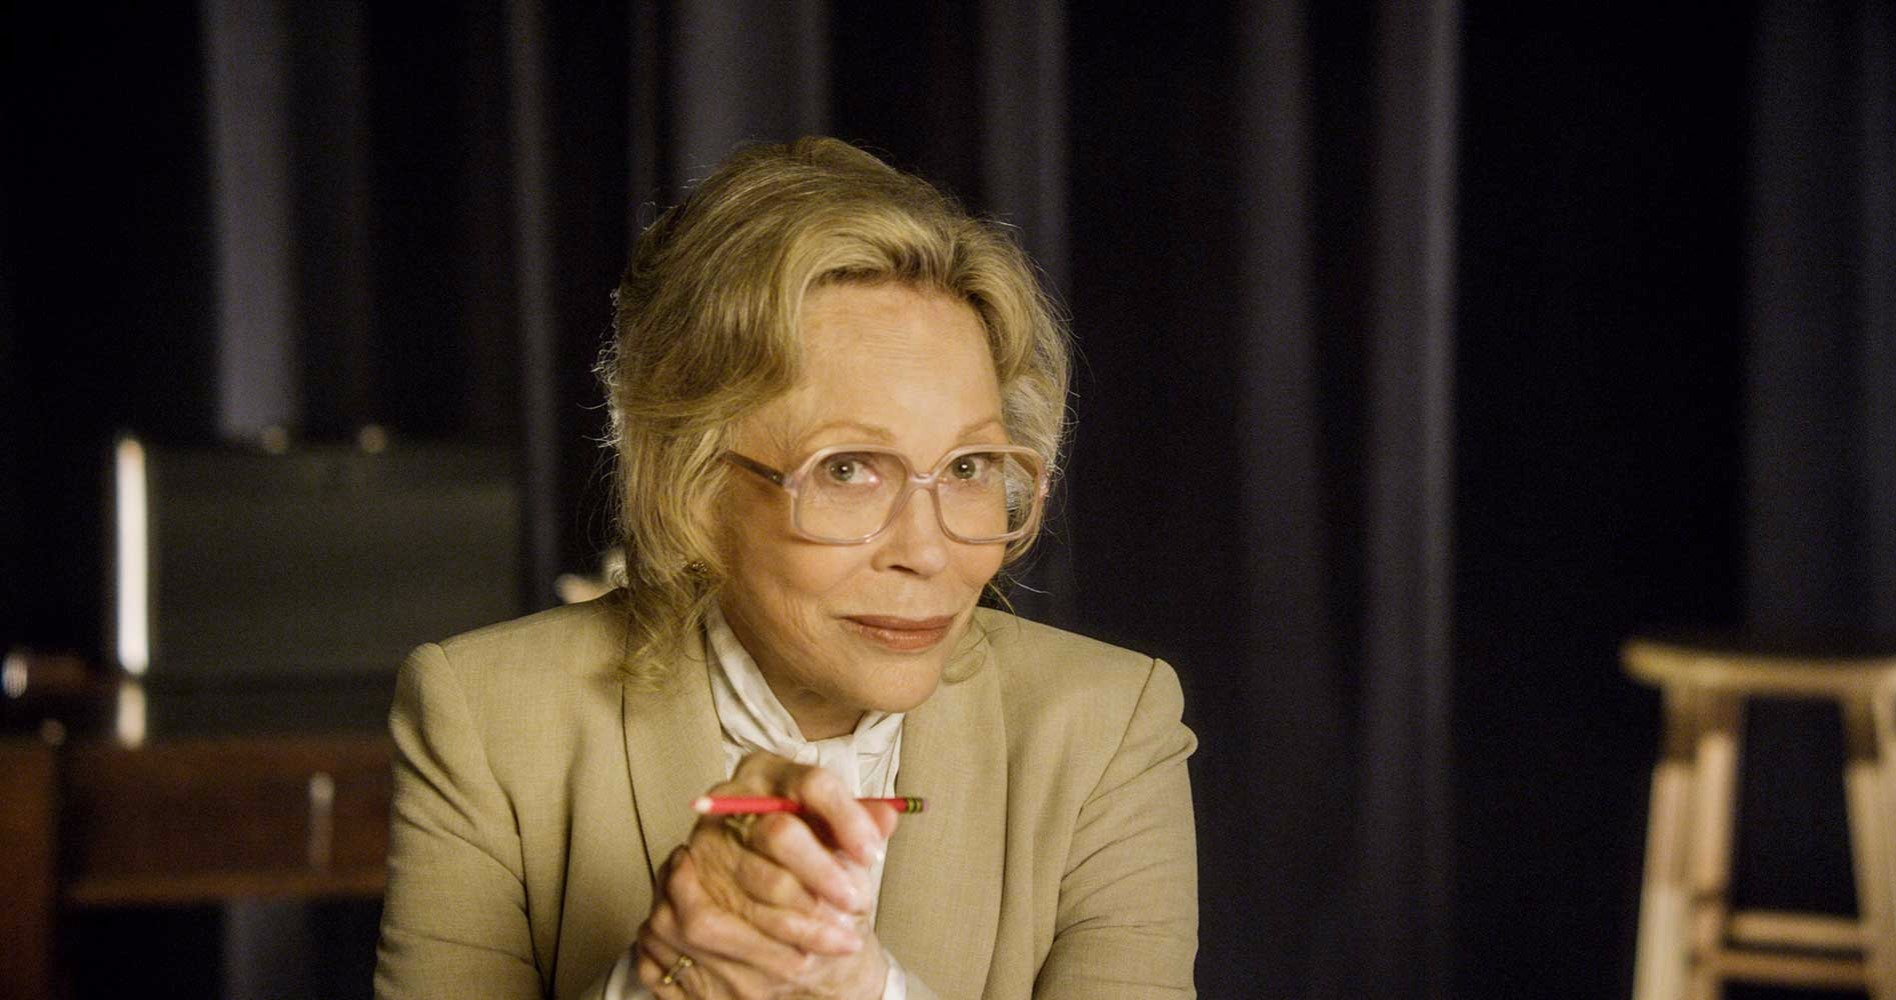 Faye Dunaway as Dr. Roberta Waters in The Case for Christ